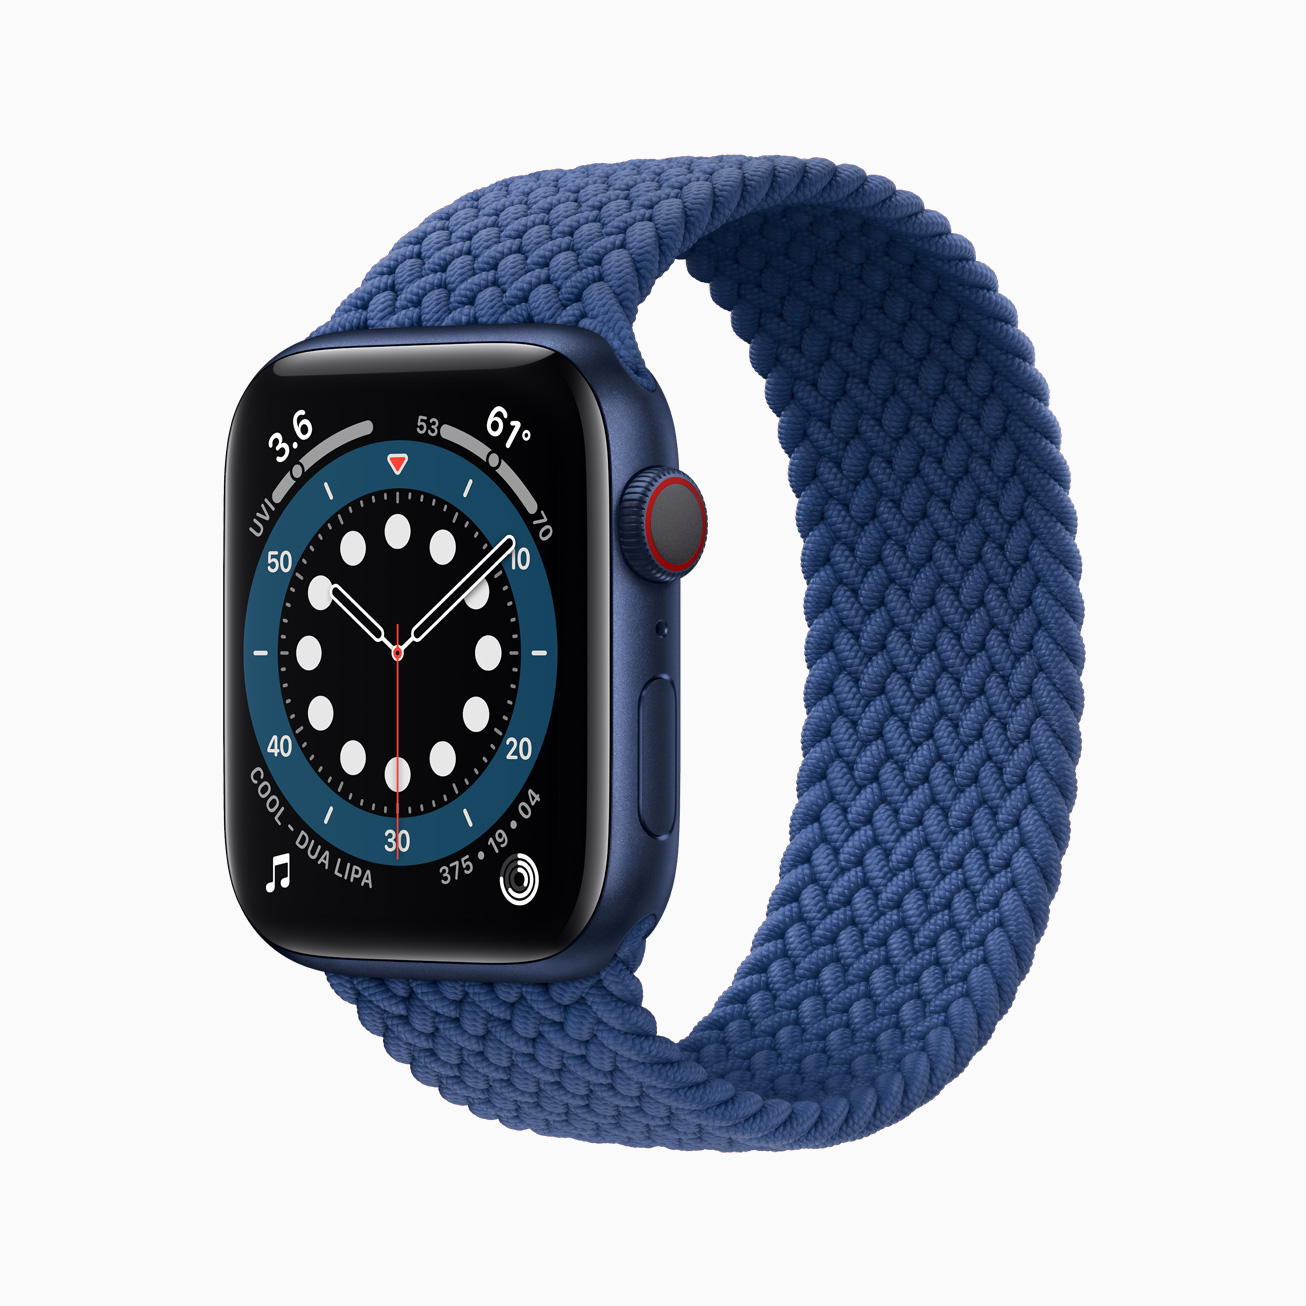 苹果 Apple Watch Series 6 智能手表 32GB (ECG、GPS、扬声器、温度计)